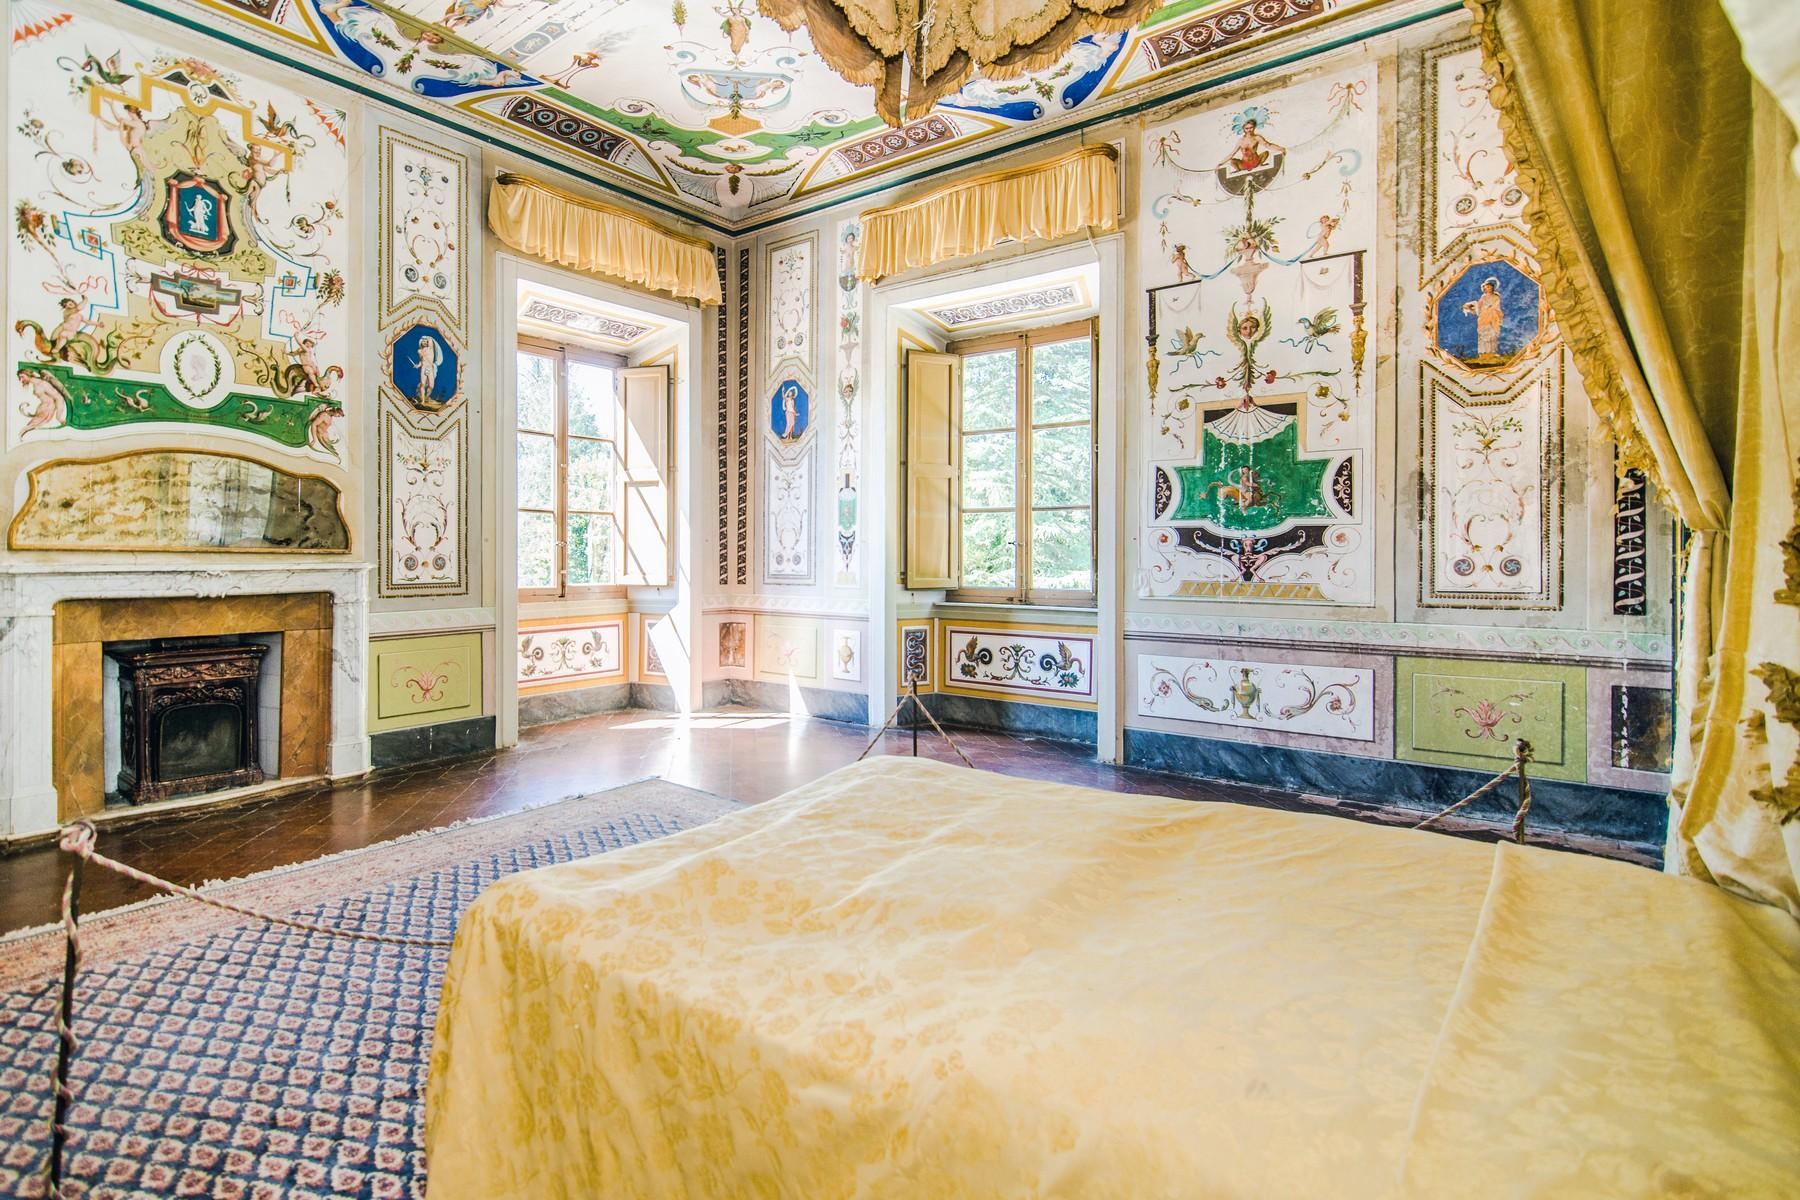 Luxury historic mansion in the countryside of Lucca - 15